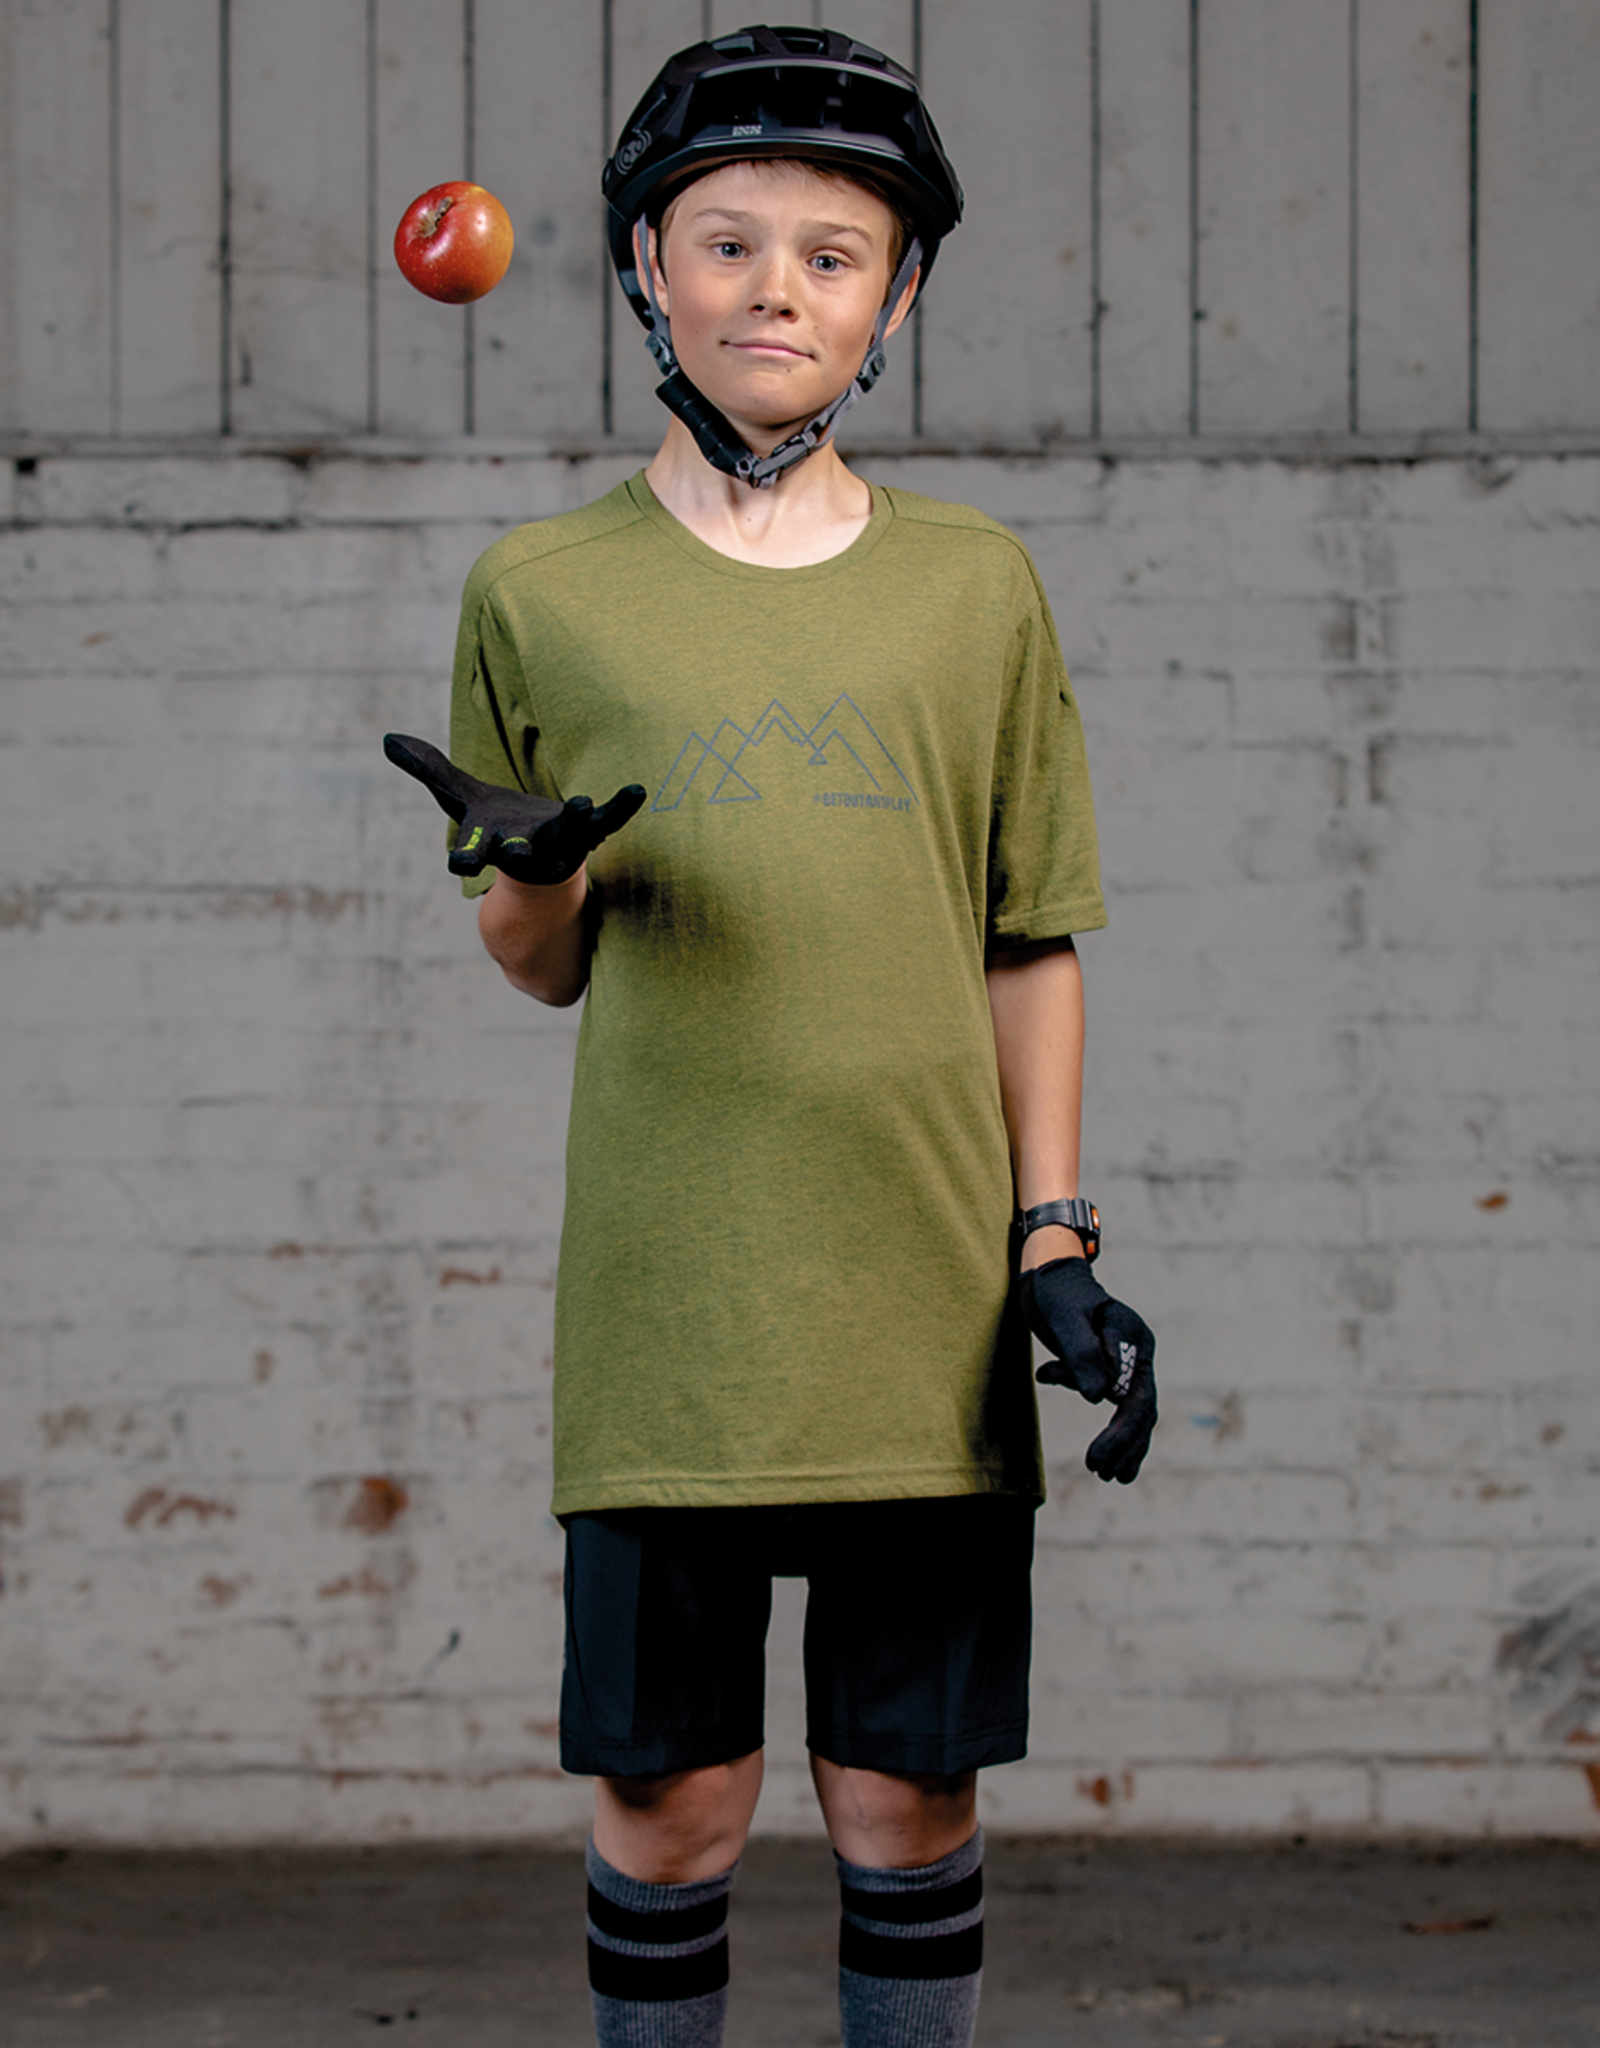 IXS IXS GET OUT AND PLAY FLOW YOUTH TECH TEE - Olive